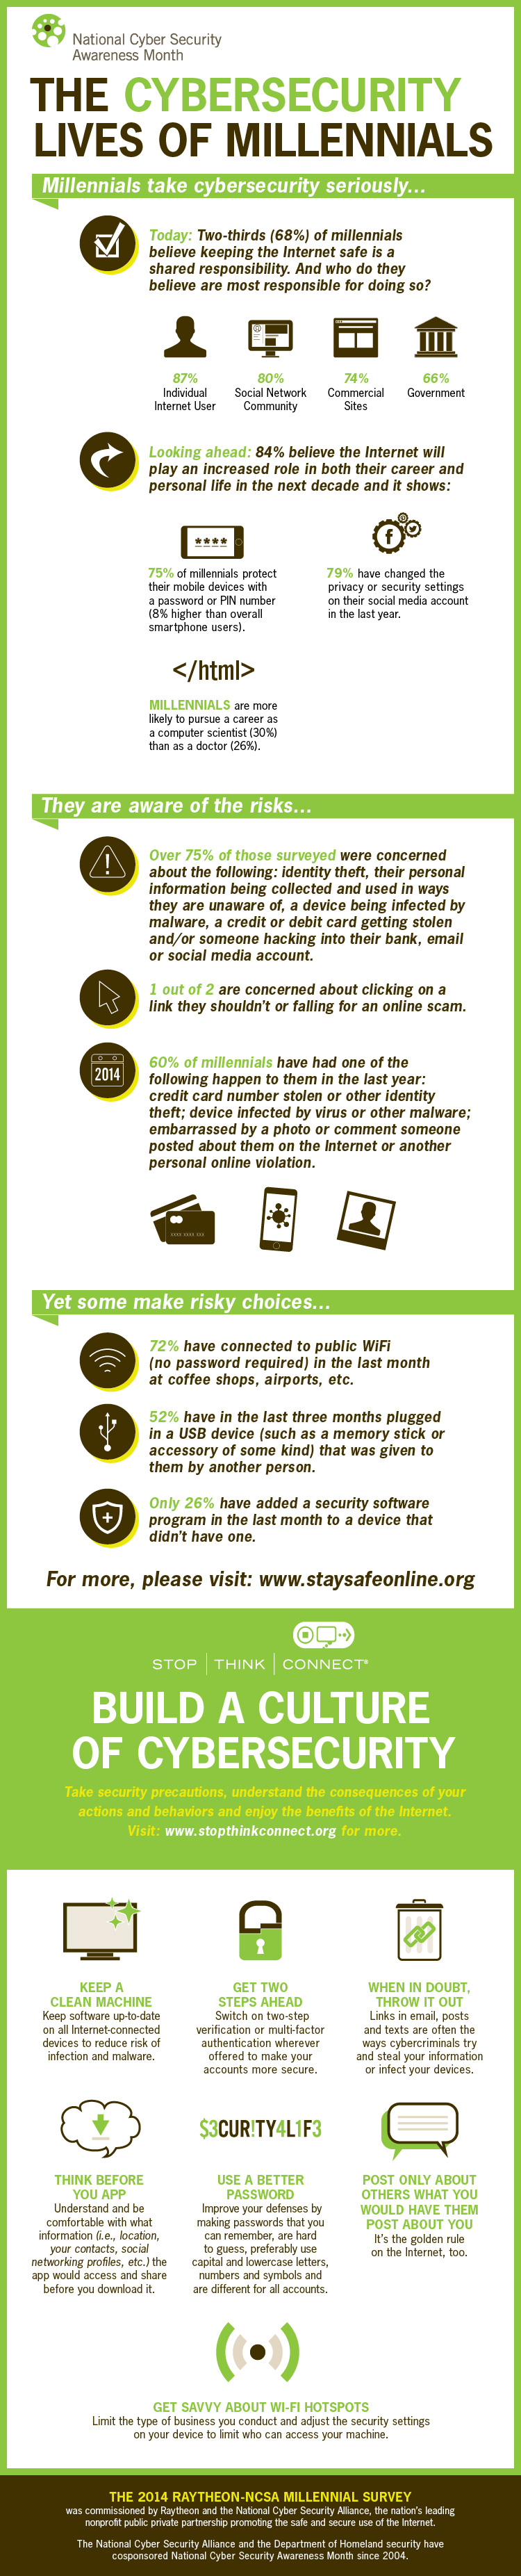 The Cybersecurity Lives of Millennials Source:  StaySafeOnline.org